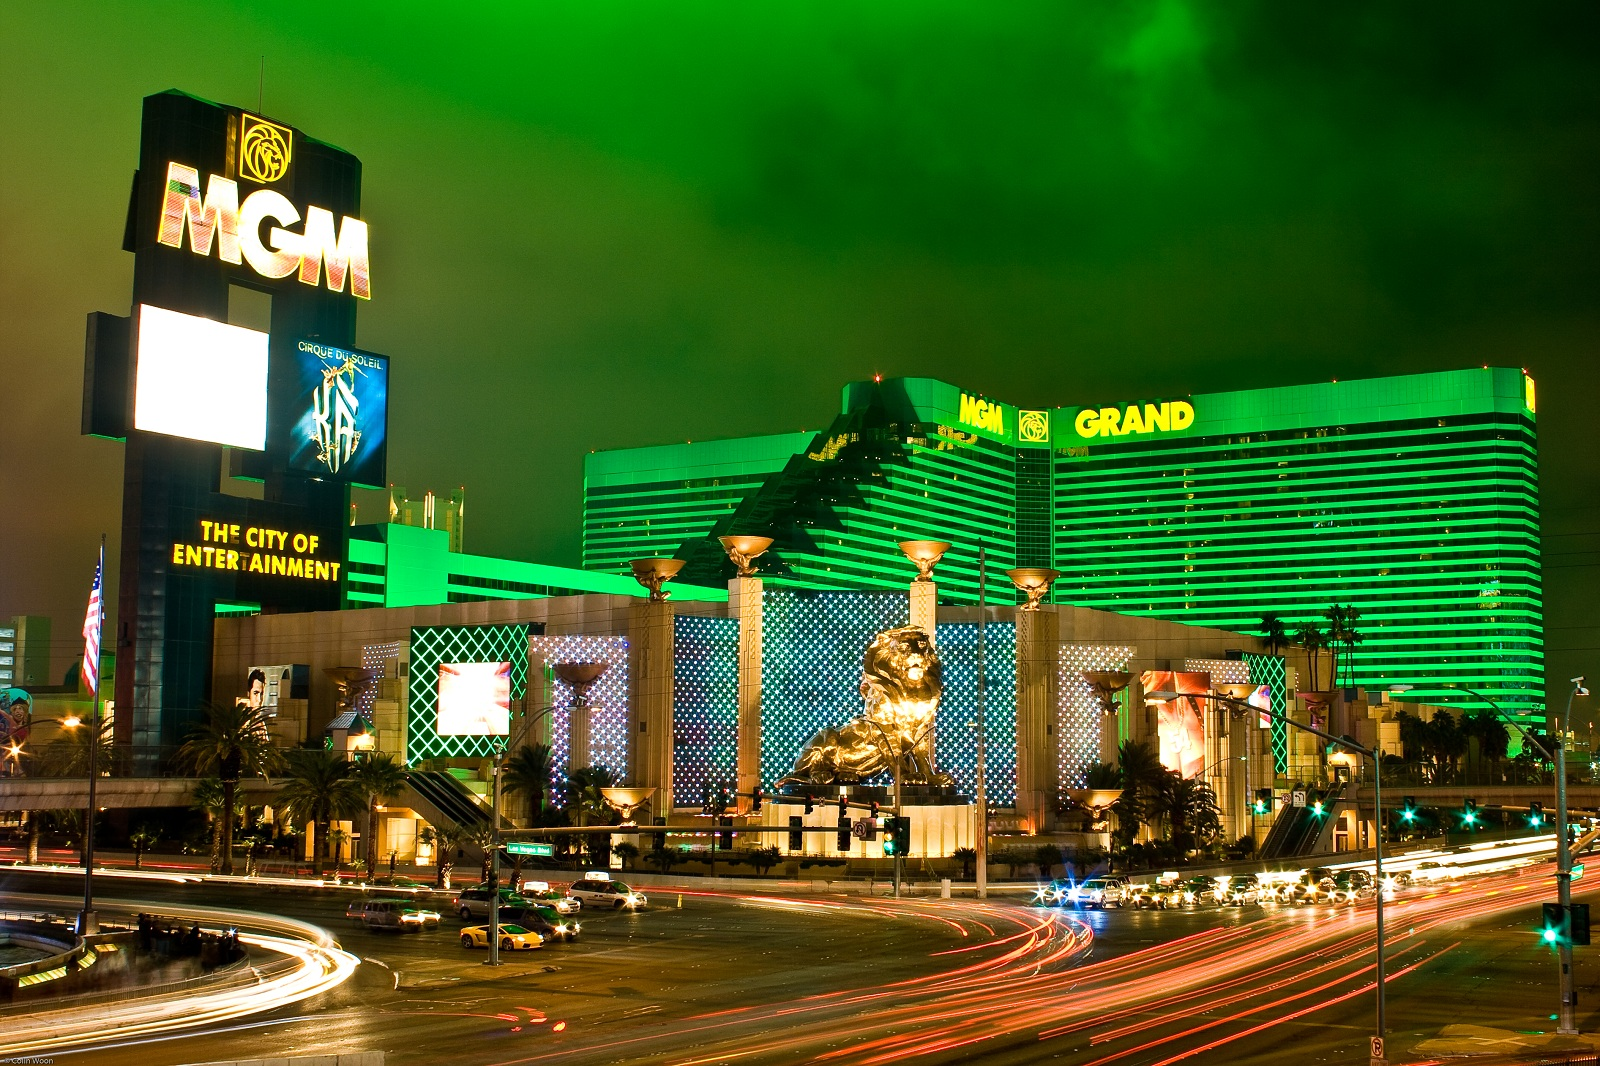 World Largest Hotels Mgm Grand Las Vegas Nevada Usa Outside Night View